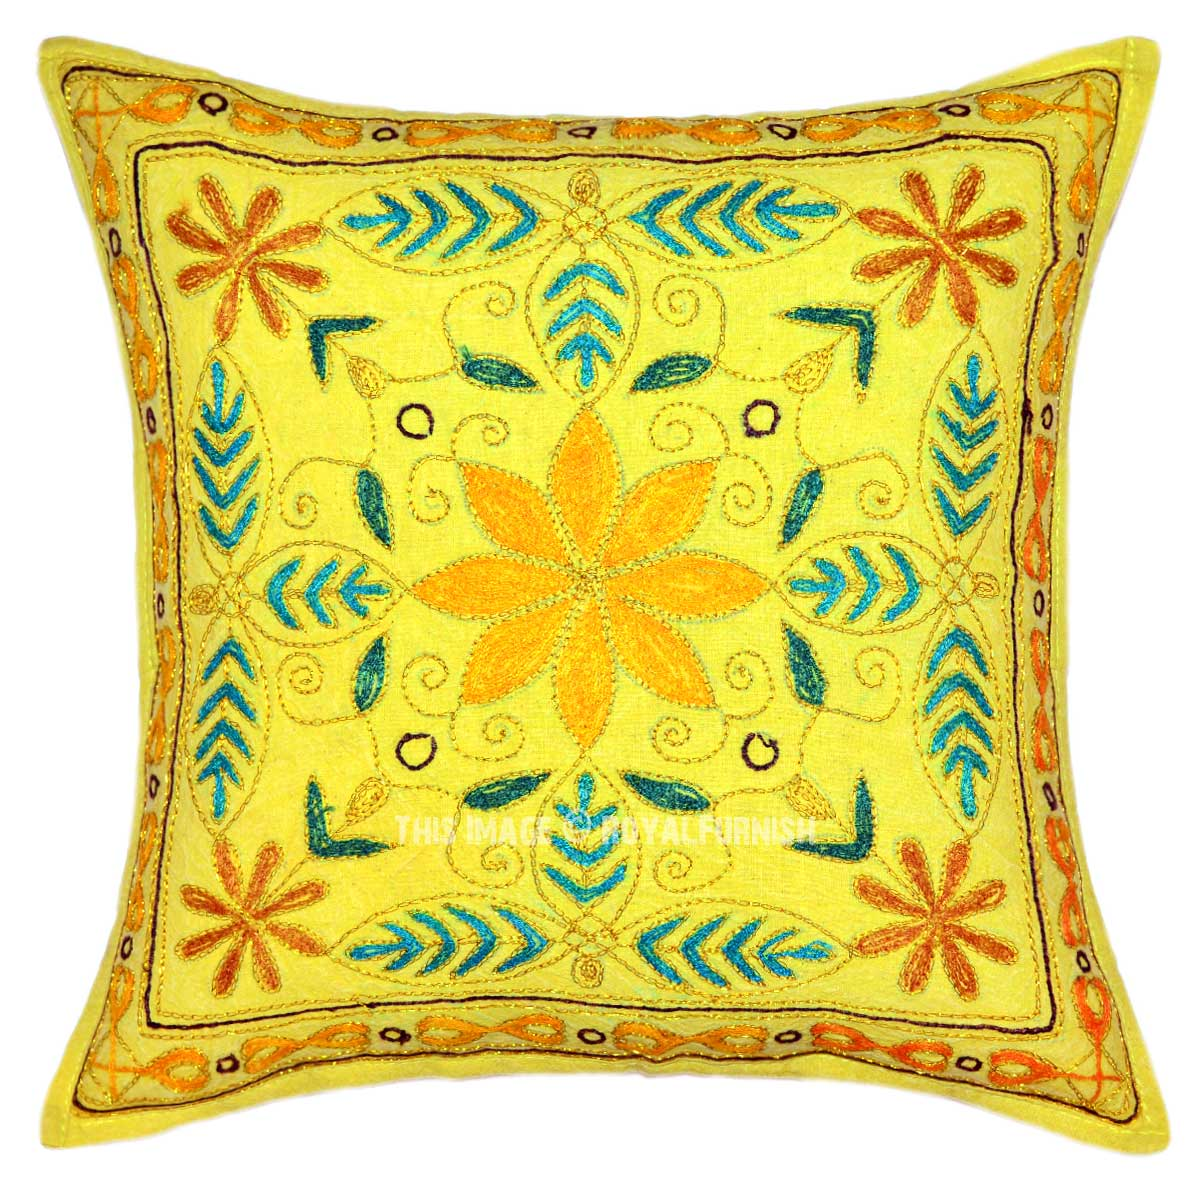 Embroidered Throw Pillow Covers : Yellow Hand Embroidered Boho Style Throw Pillow Cover - RoyalFurnish.com